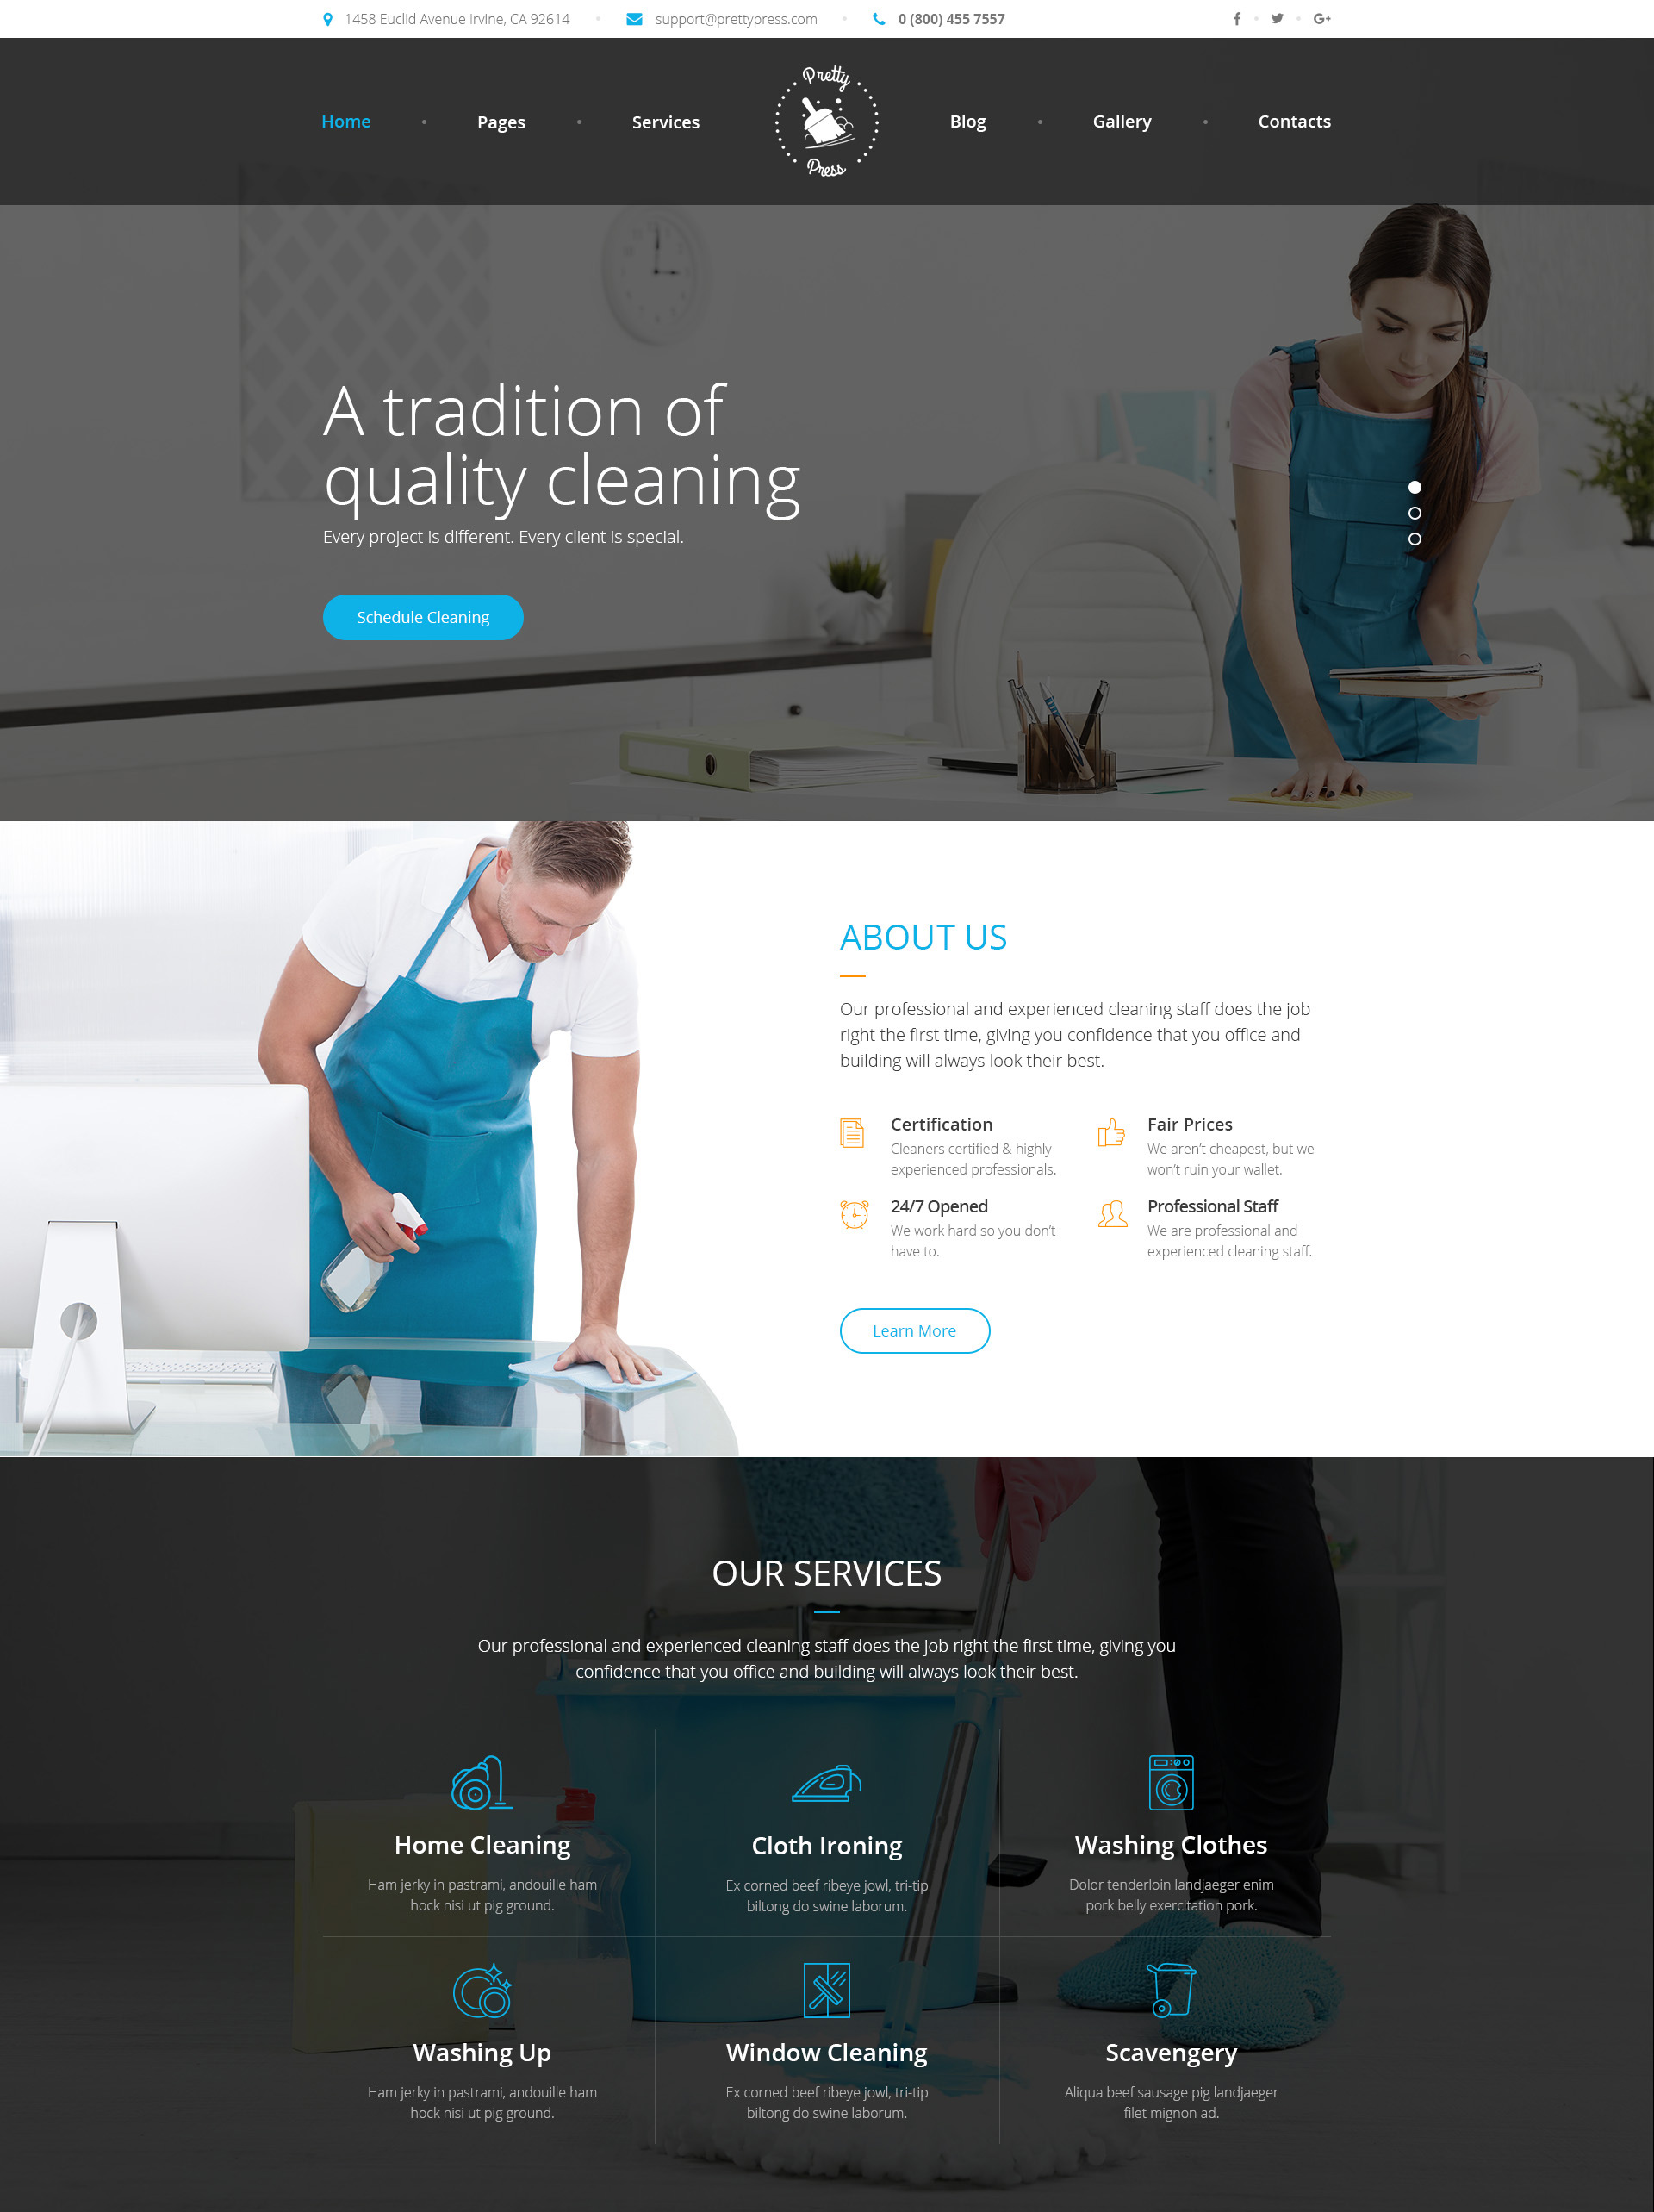 PrettyPress – Cleaning Service HTML Template | Modern Web Templates